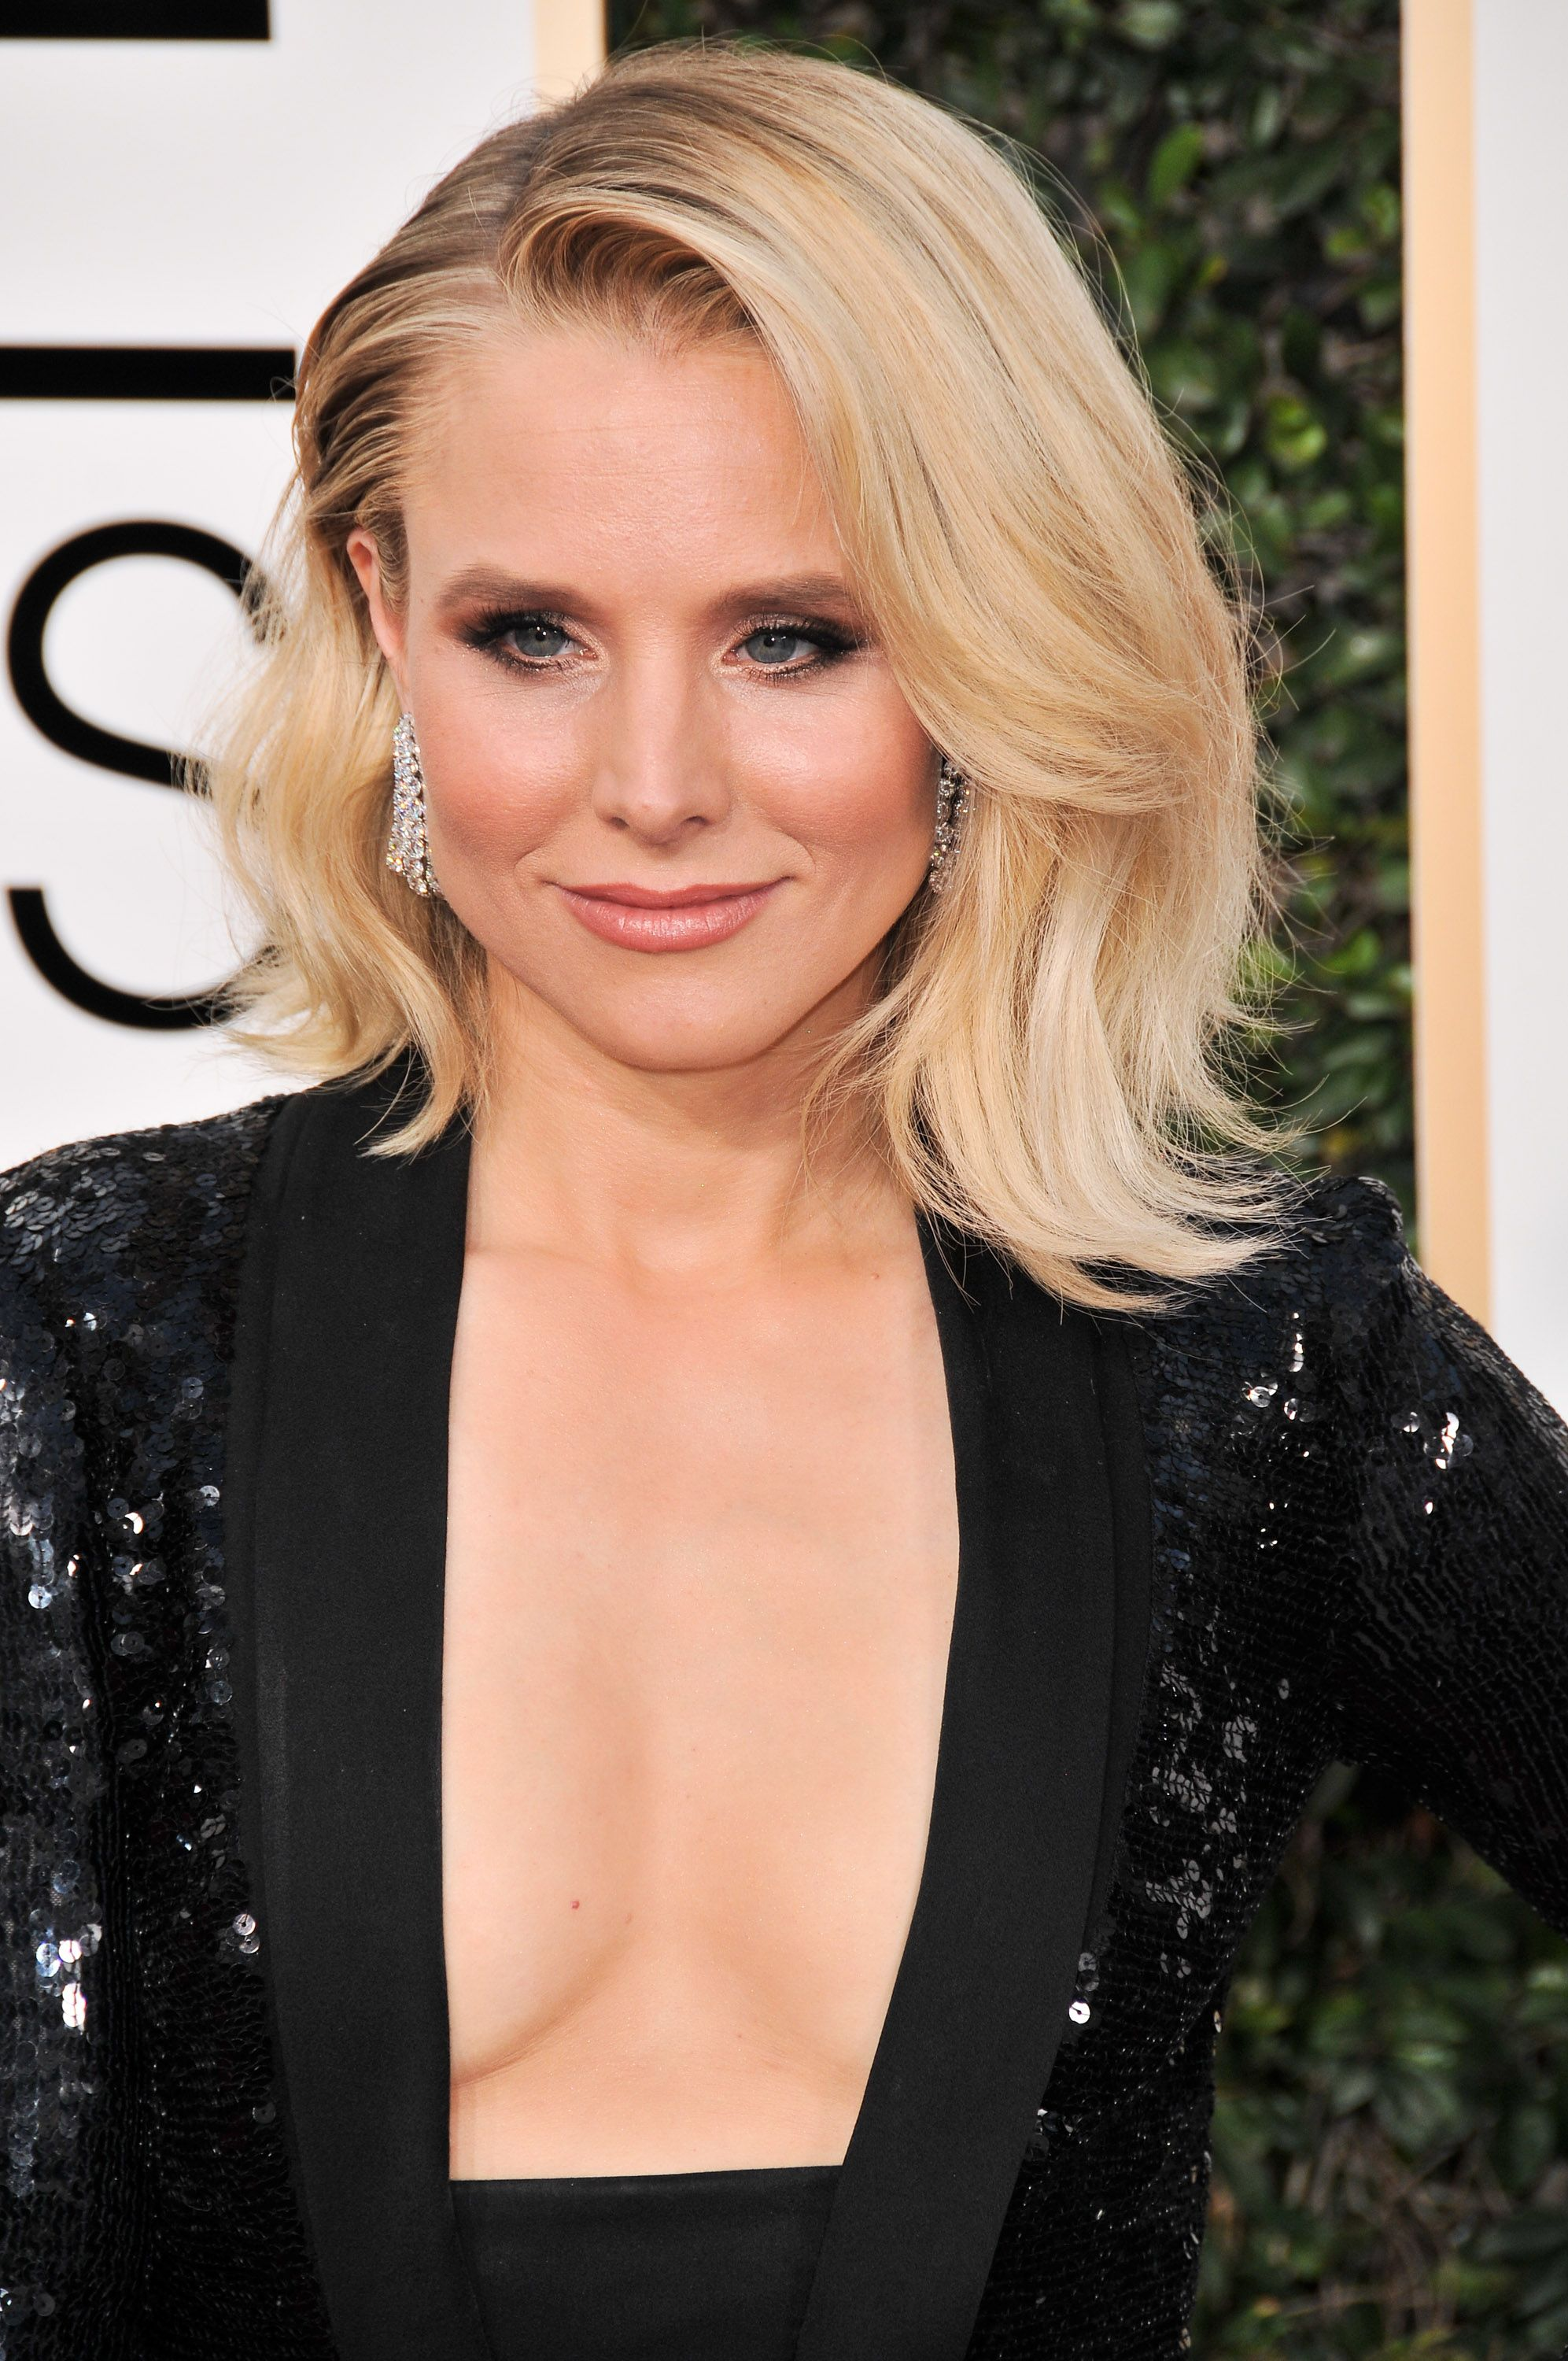 Hot Photos of Kristen Bell